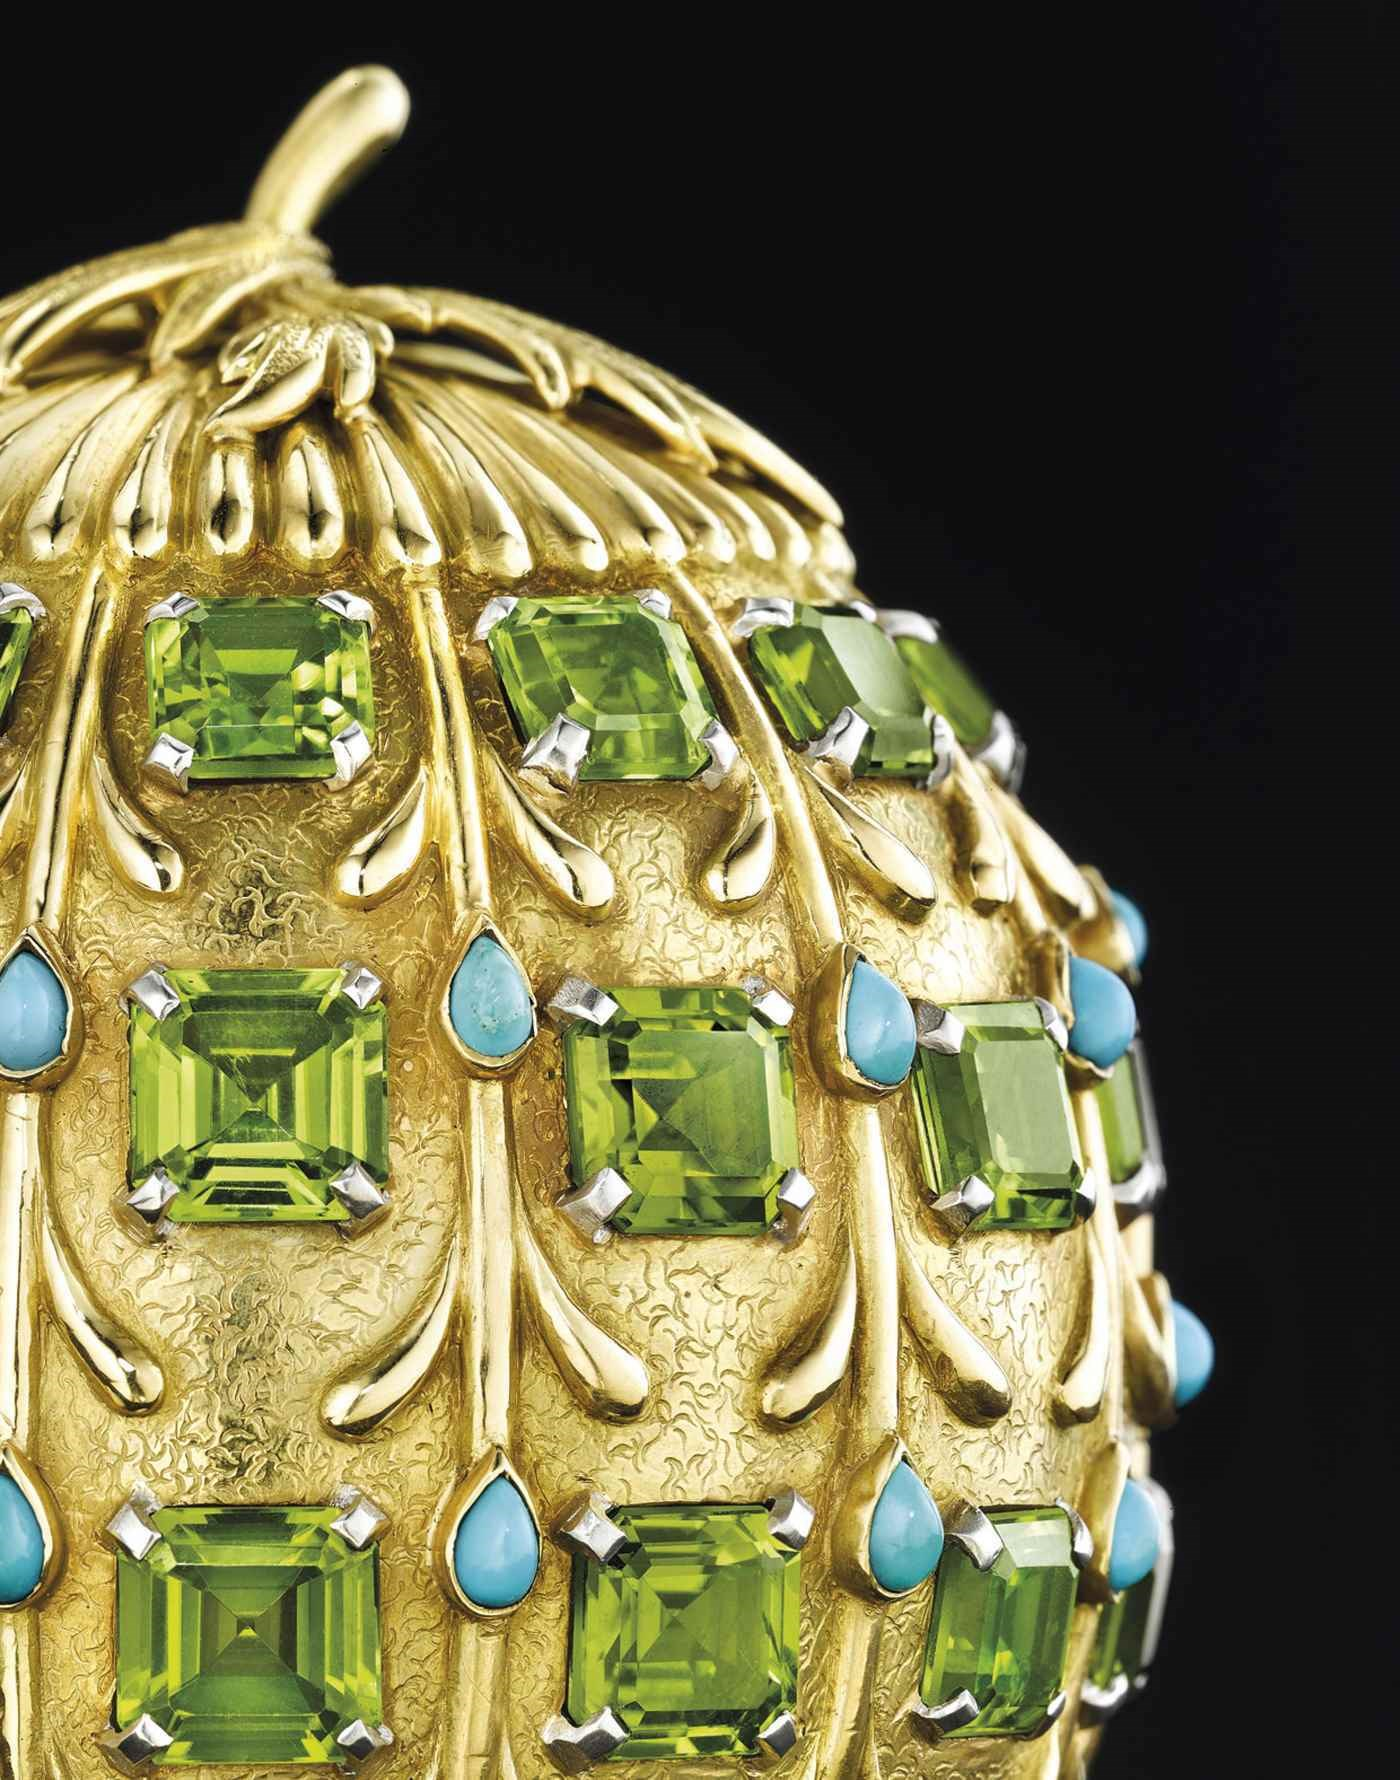 Important Jewels auction at Christies